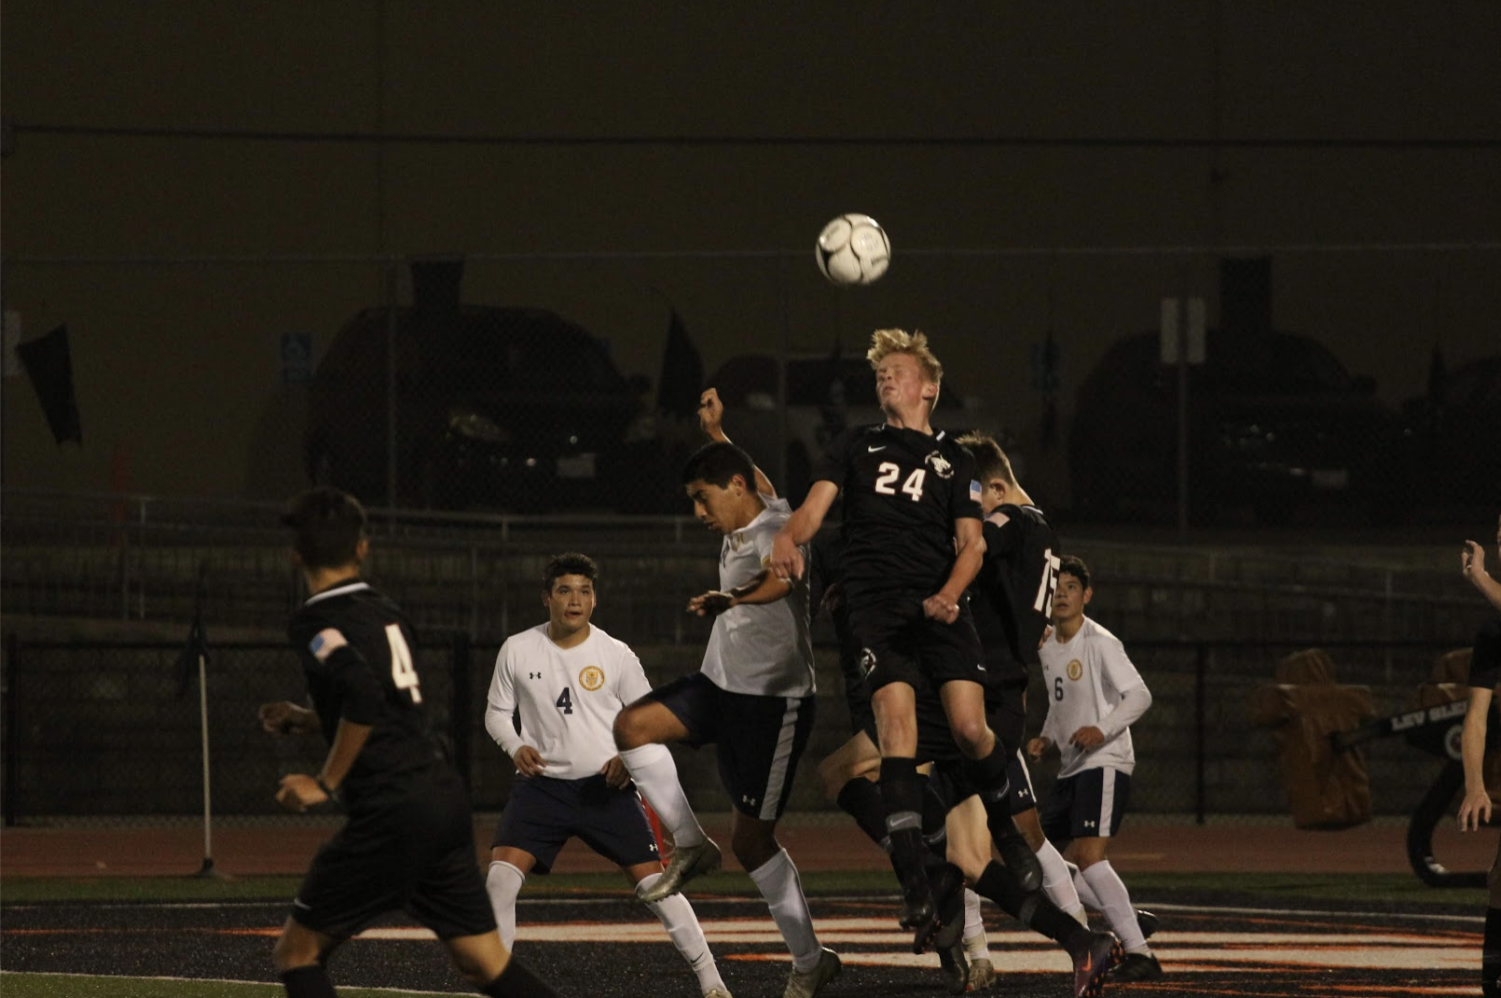 Kyle Grenier '20 jumps into the air to fight for an incoming ball. Credit: Jason Messner / The Foothill Dragon Press